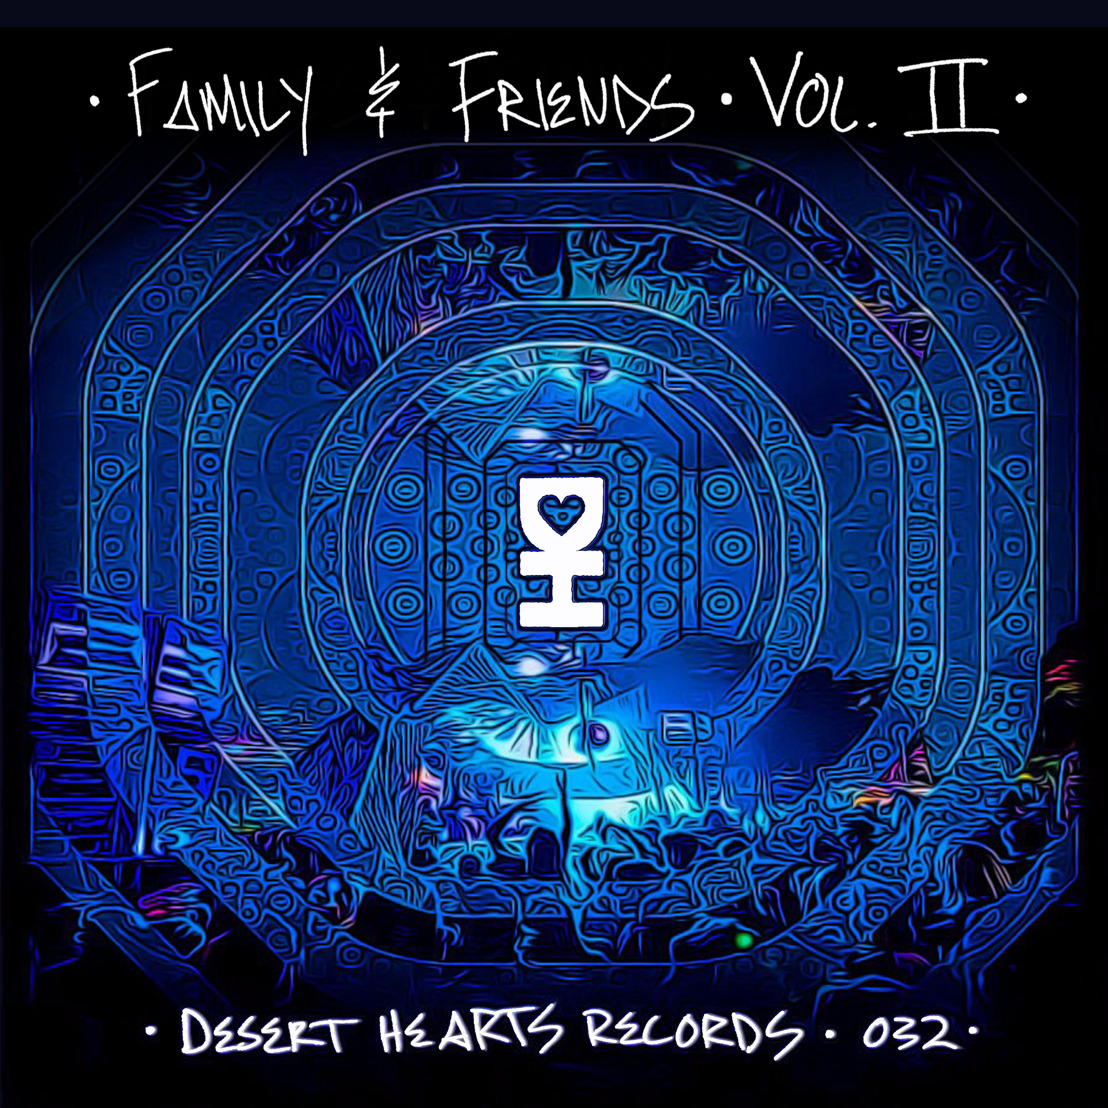 [LISTEN] Desert Hearts releases Family & Friends Compilation Vol. 2